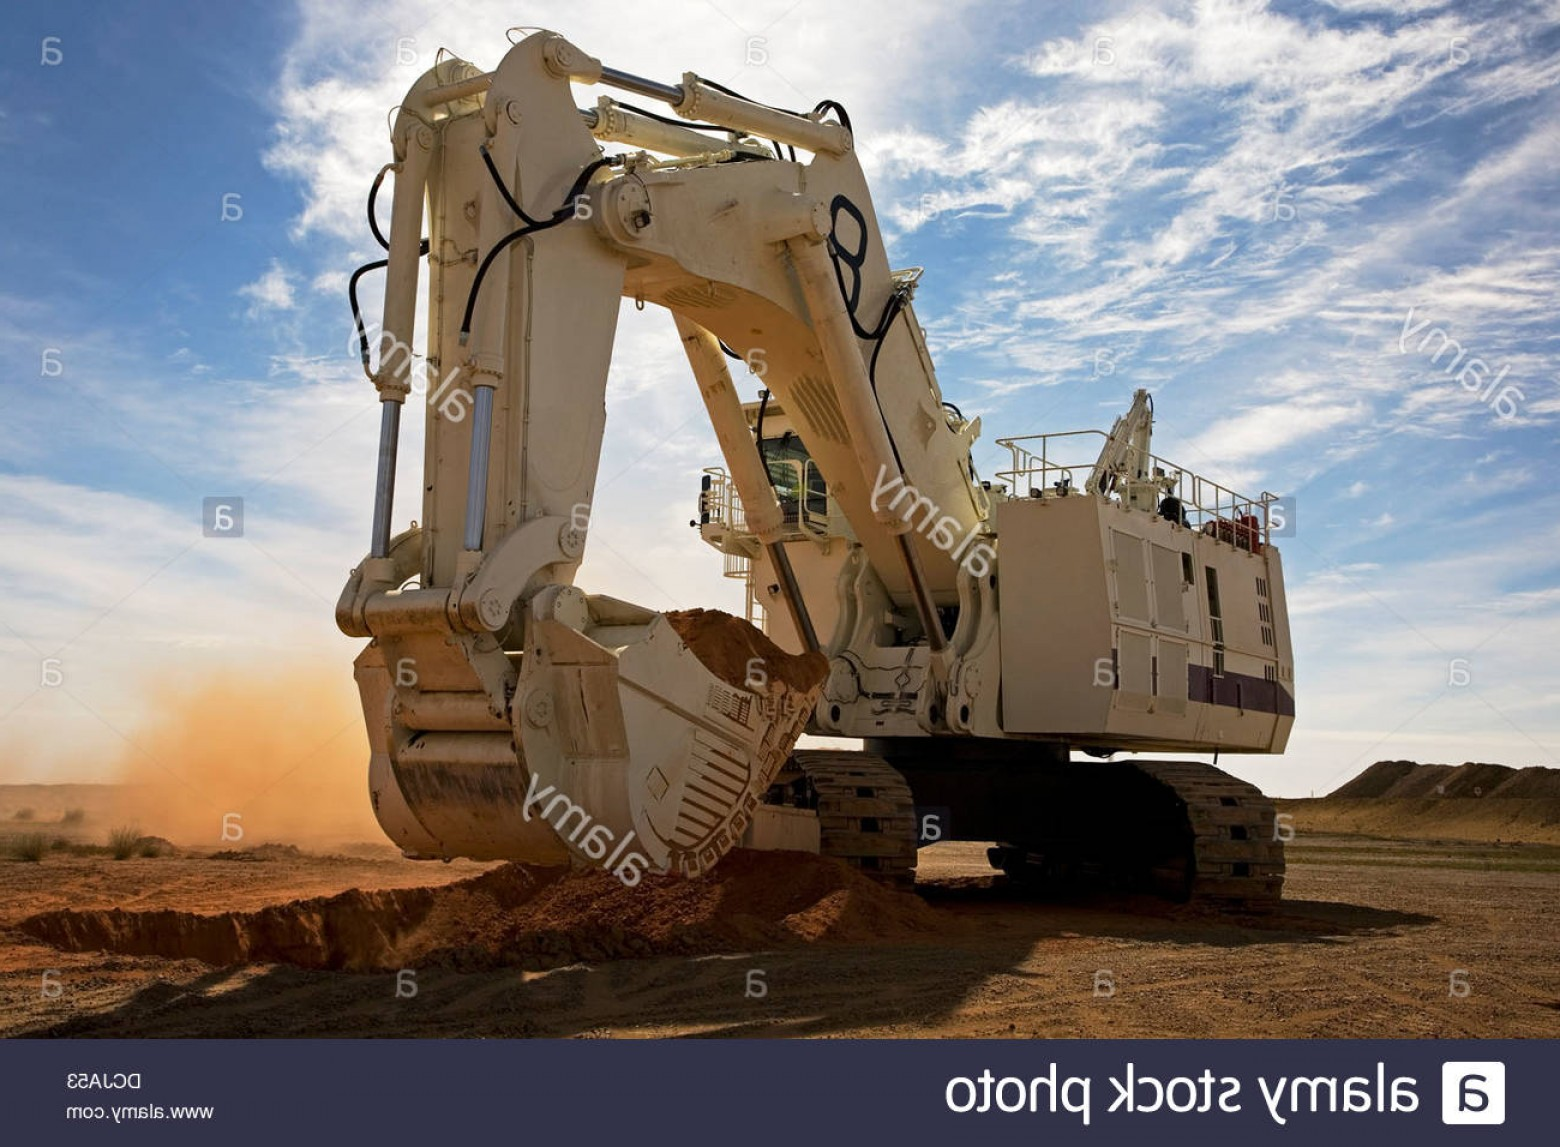 Caterpillar Trackhoe Vector: Stock Photo Bucyrus Caterpillar Hydraulic Excavator Digger Breaking New Ground